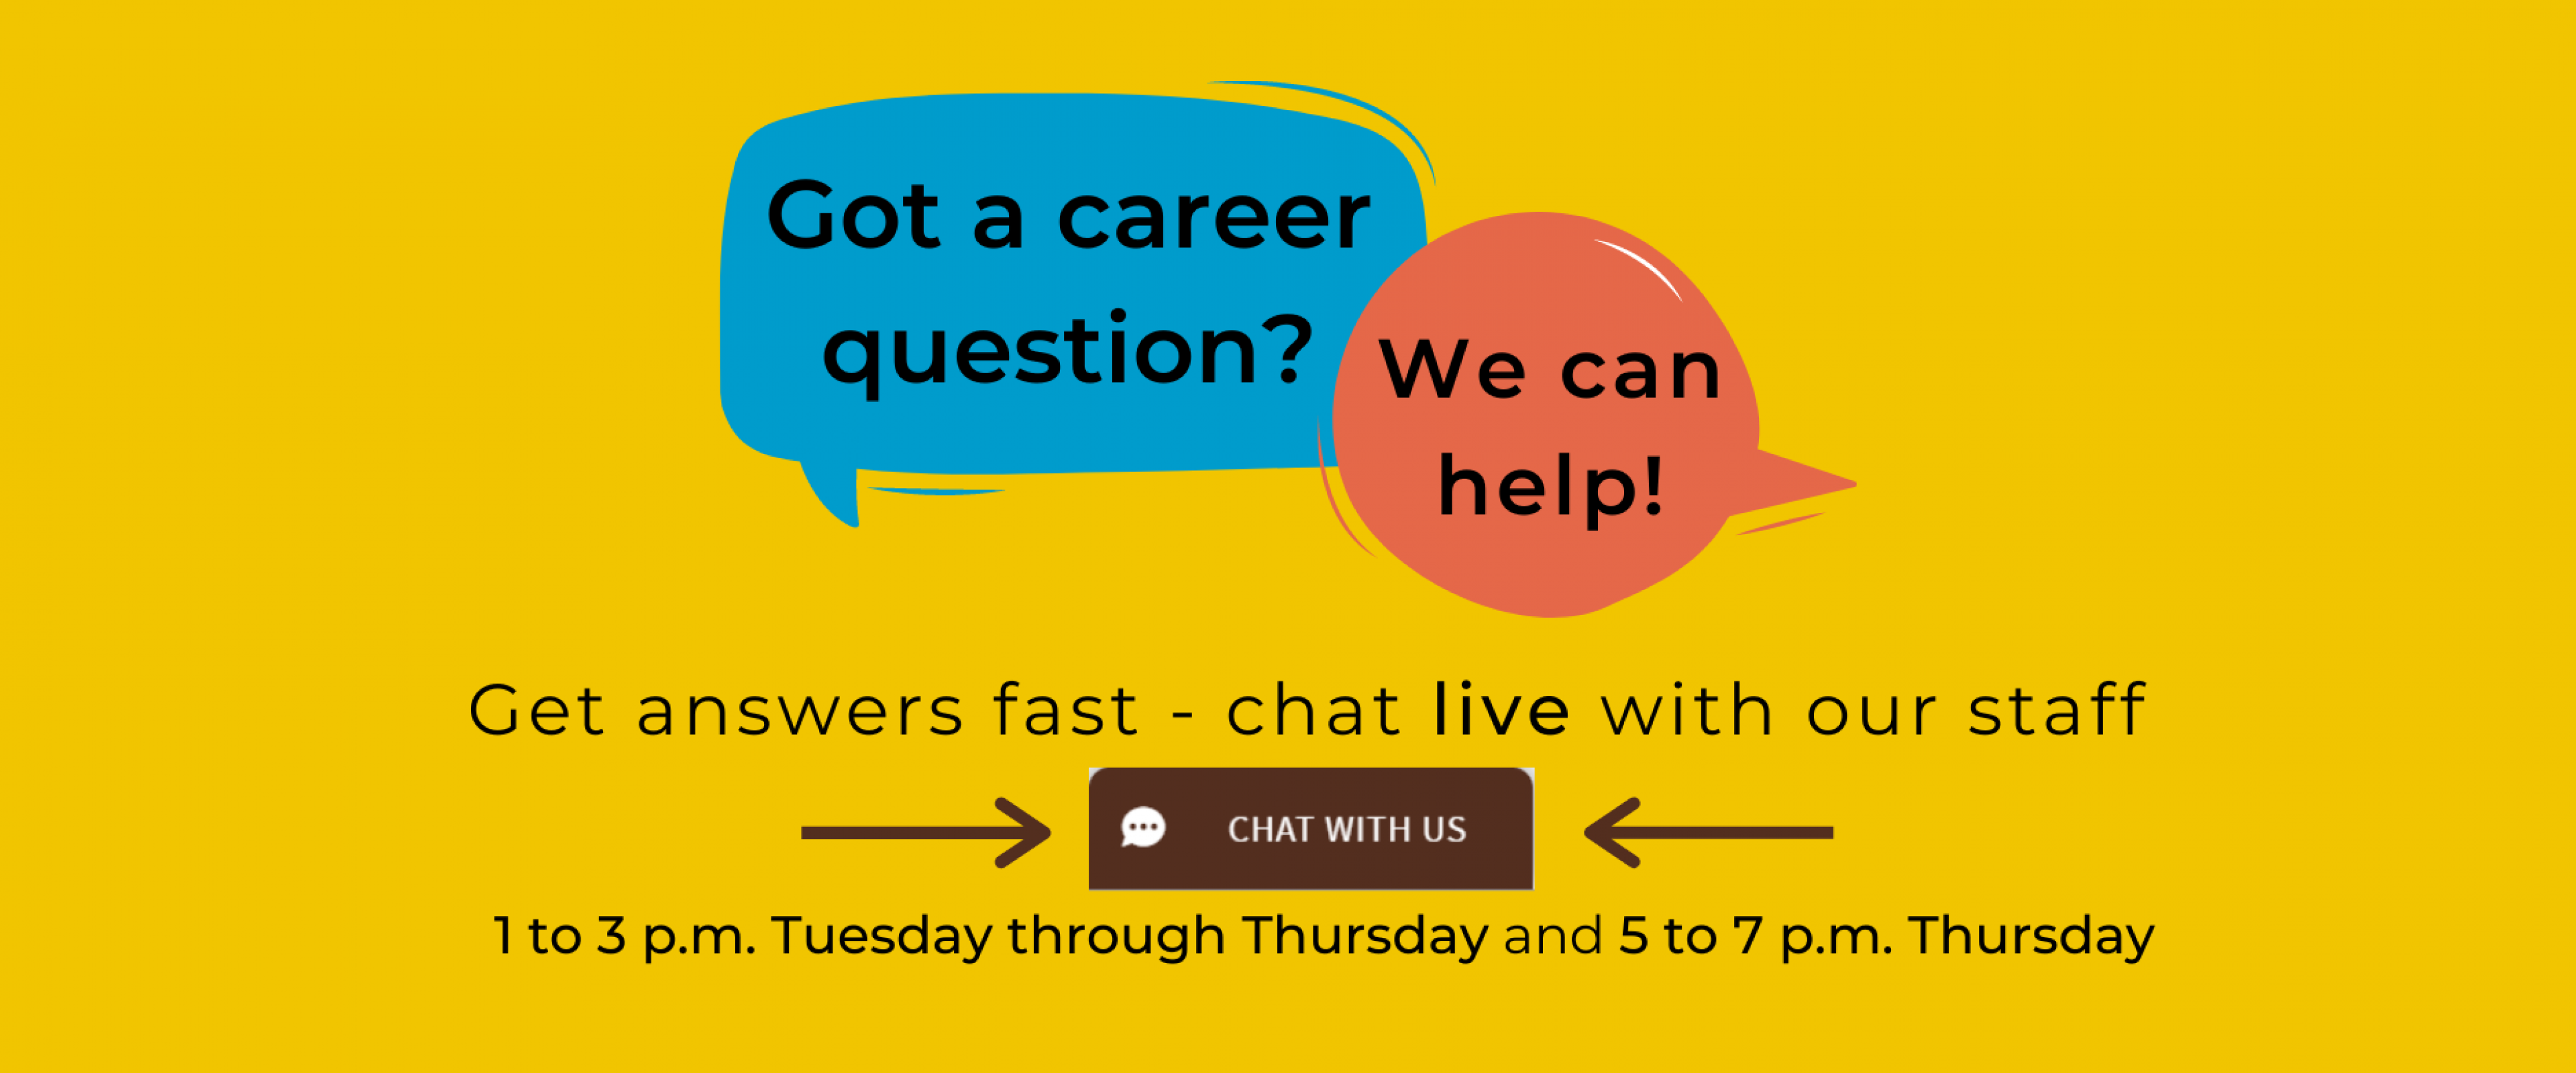 "Got a career question? We can help! Get answers fast - chat live with our staff 1 to 3 p.m. Tuesday through Thursday and 5 to 7 p.m. on Thursday. Look for the brown ""Chat with us"" tab at the bottom right corner of the page."